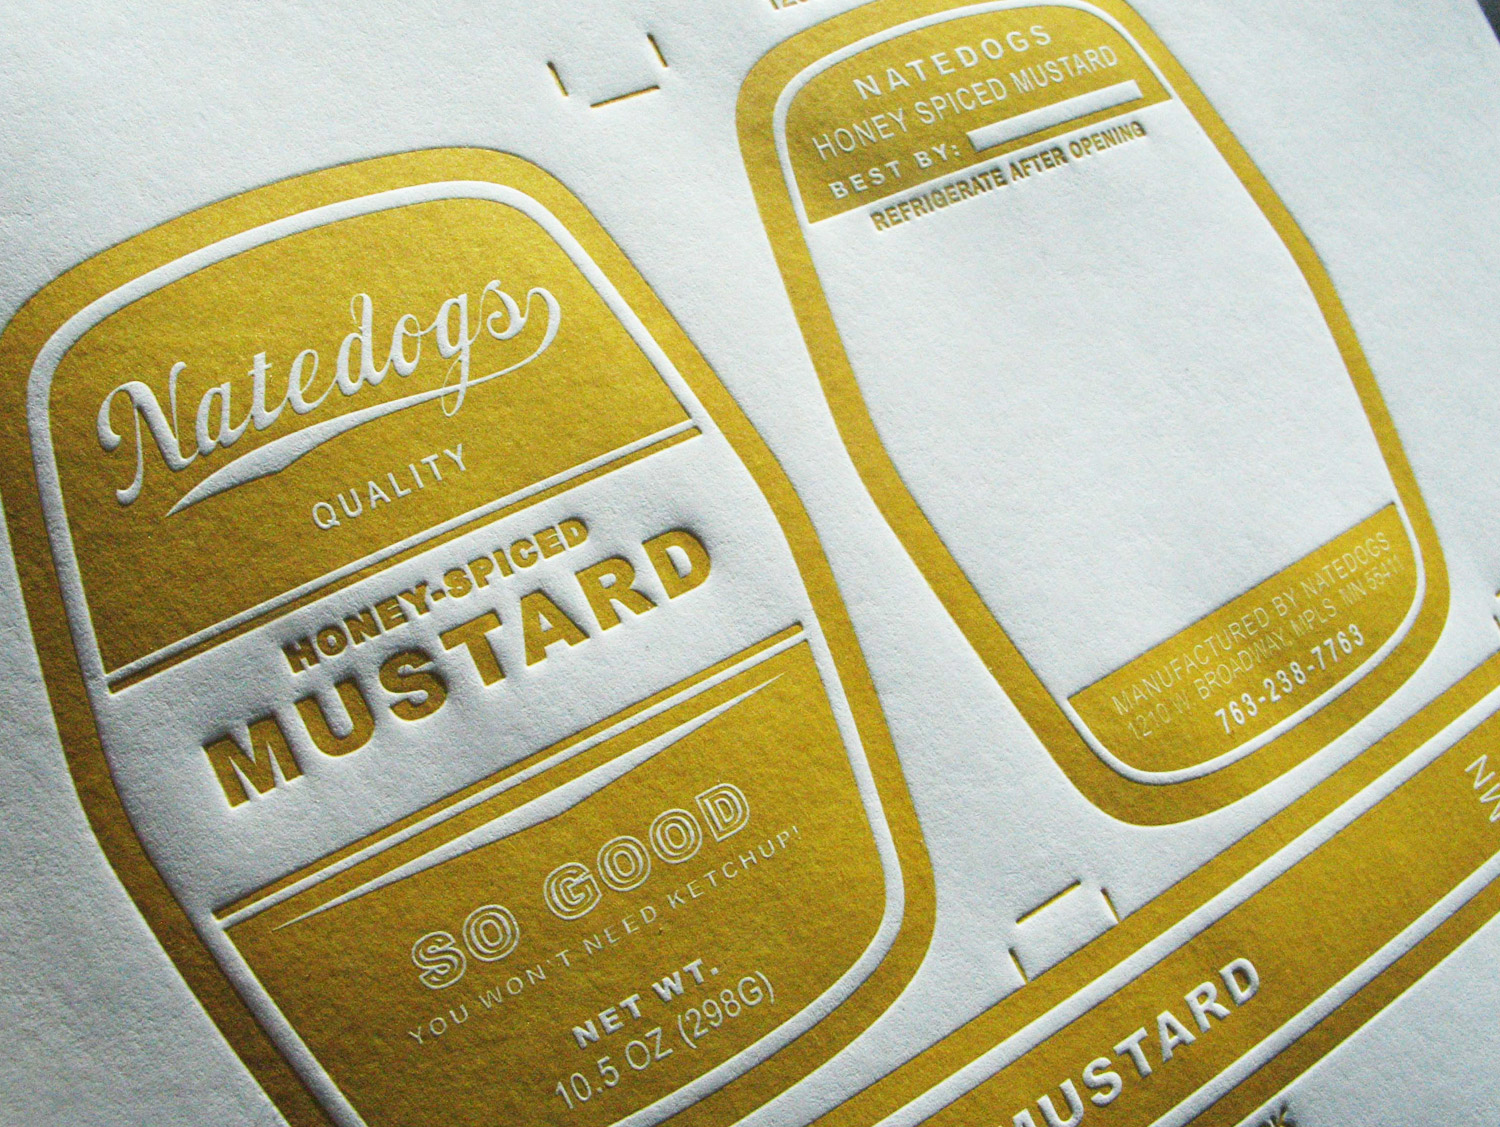 Natedogs-Mustard-Packaging-09.jpg